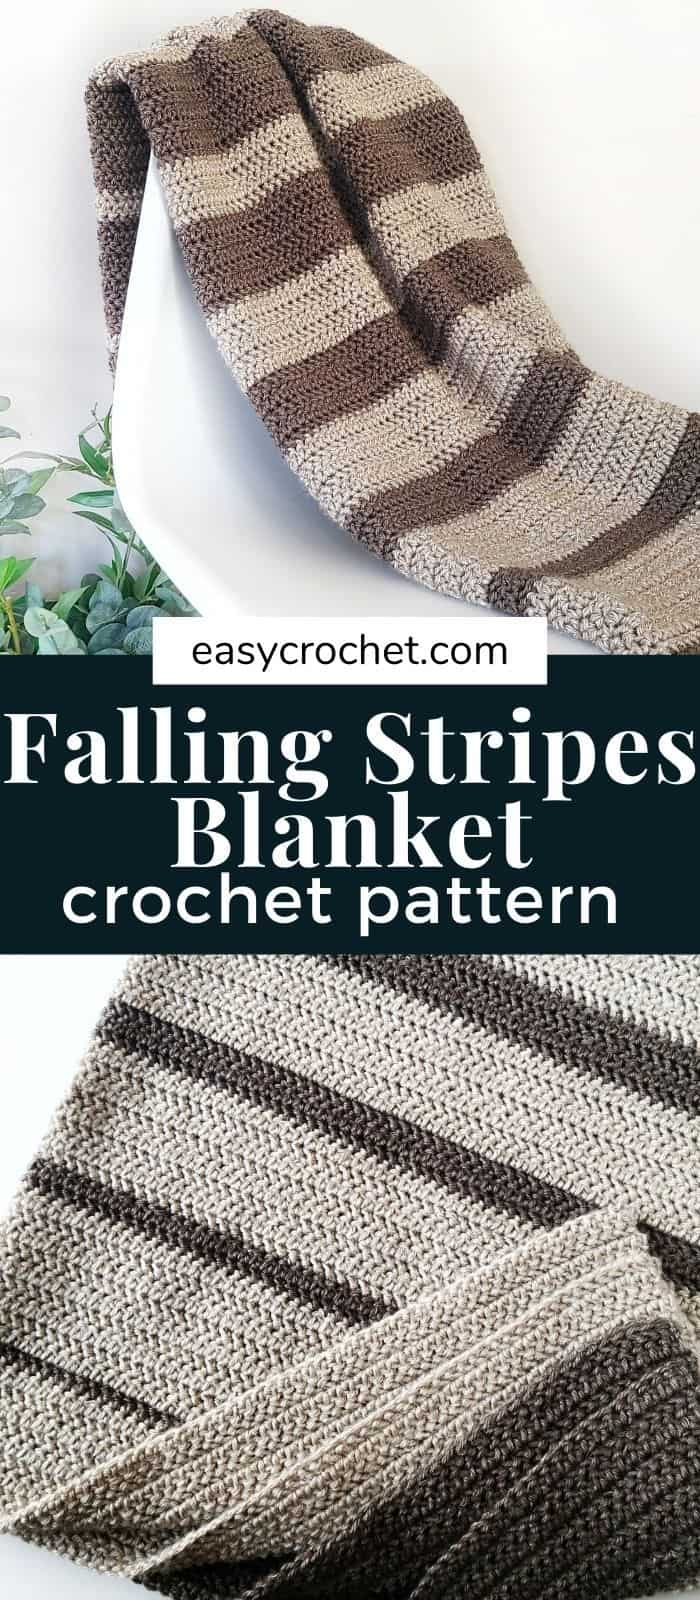 Falling In Crochet Blanket Pattern via @easycrochetcom